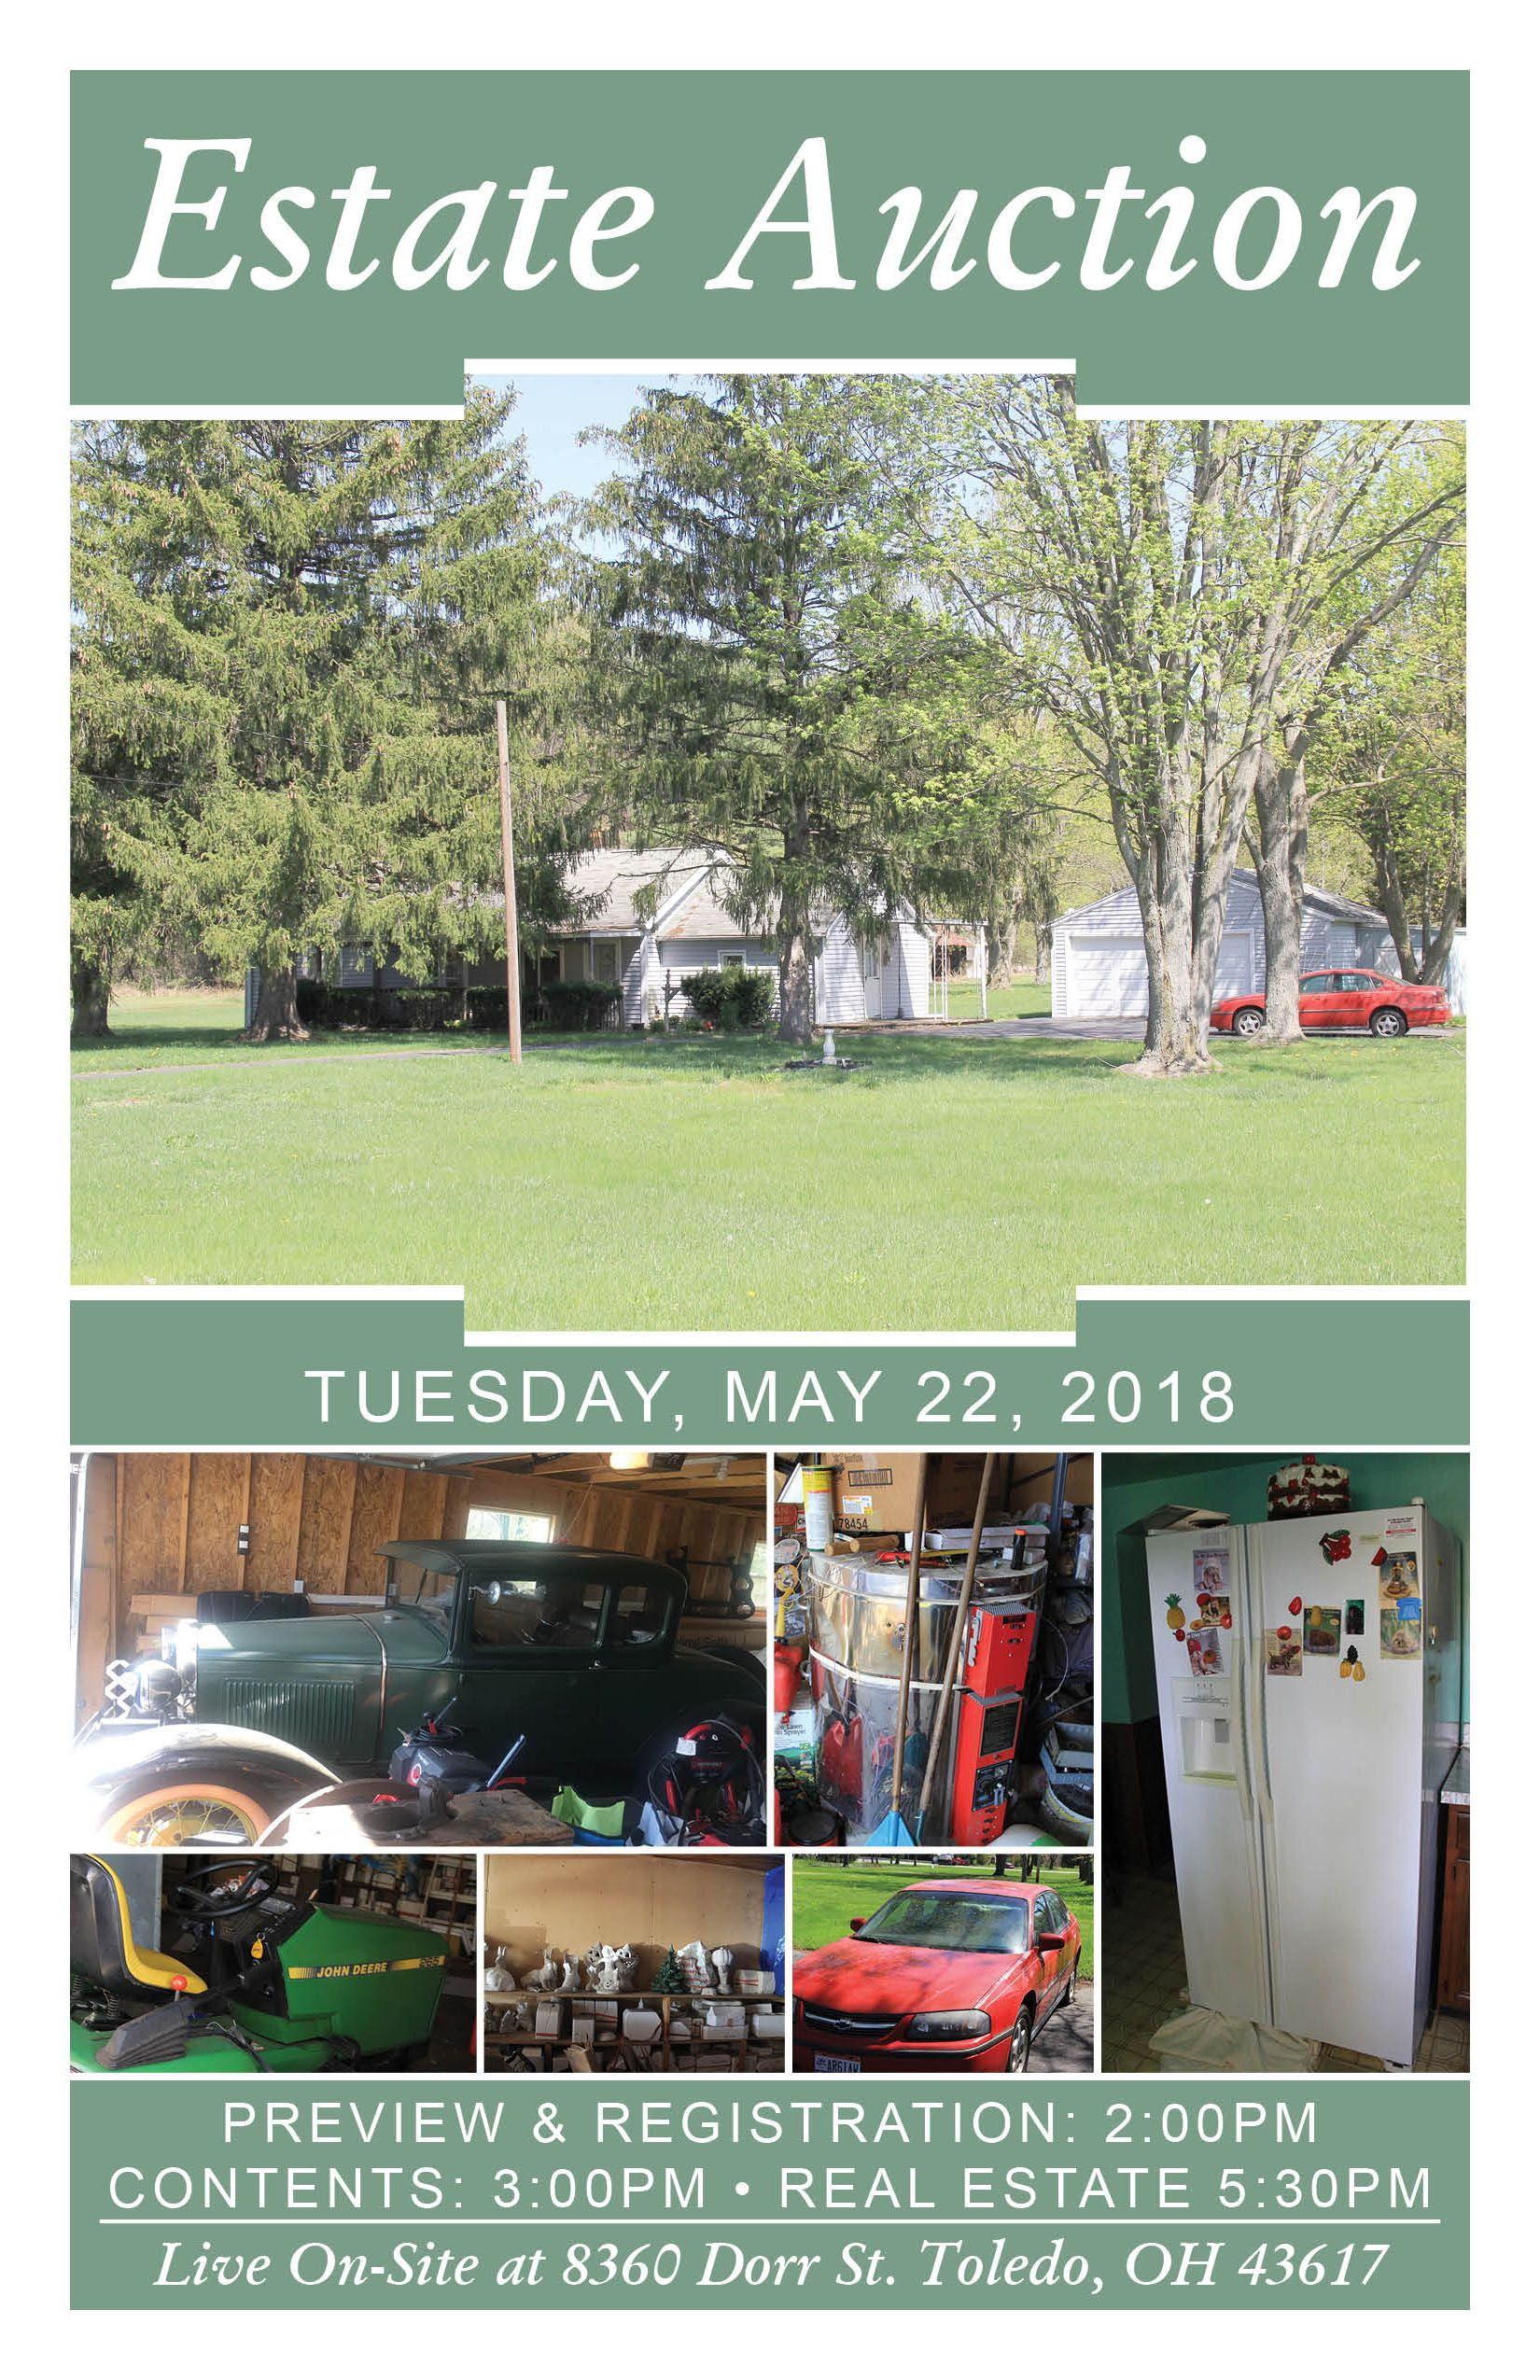 Live OnSite Estate Auction! Tuesday, May 22, 2018